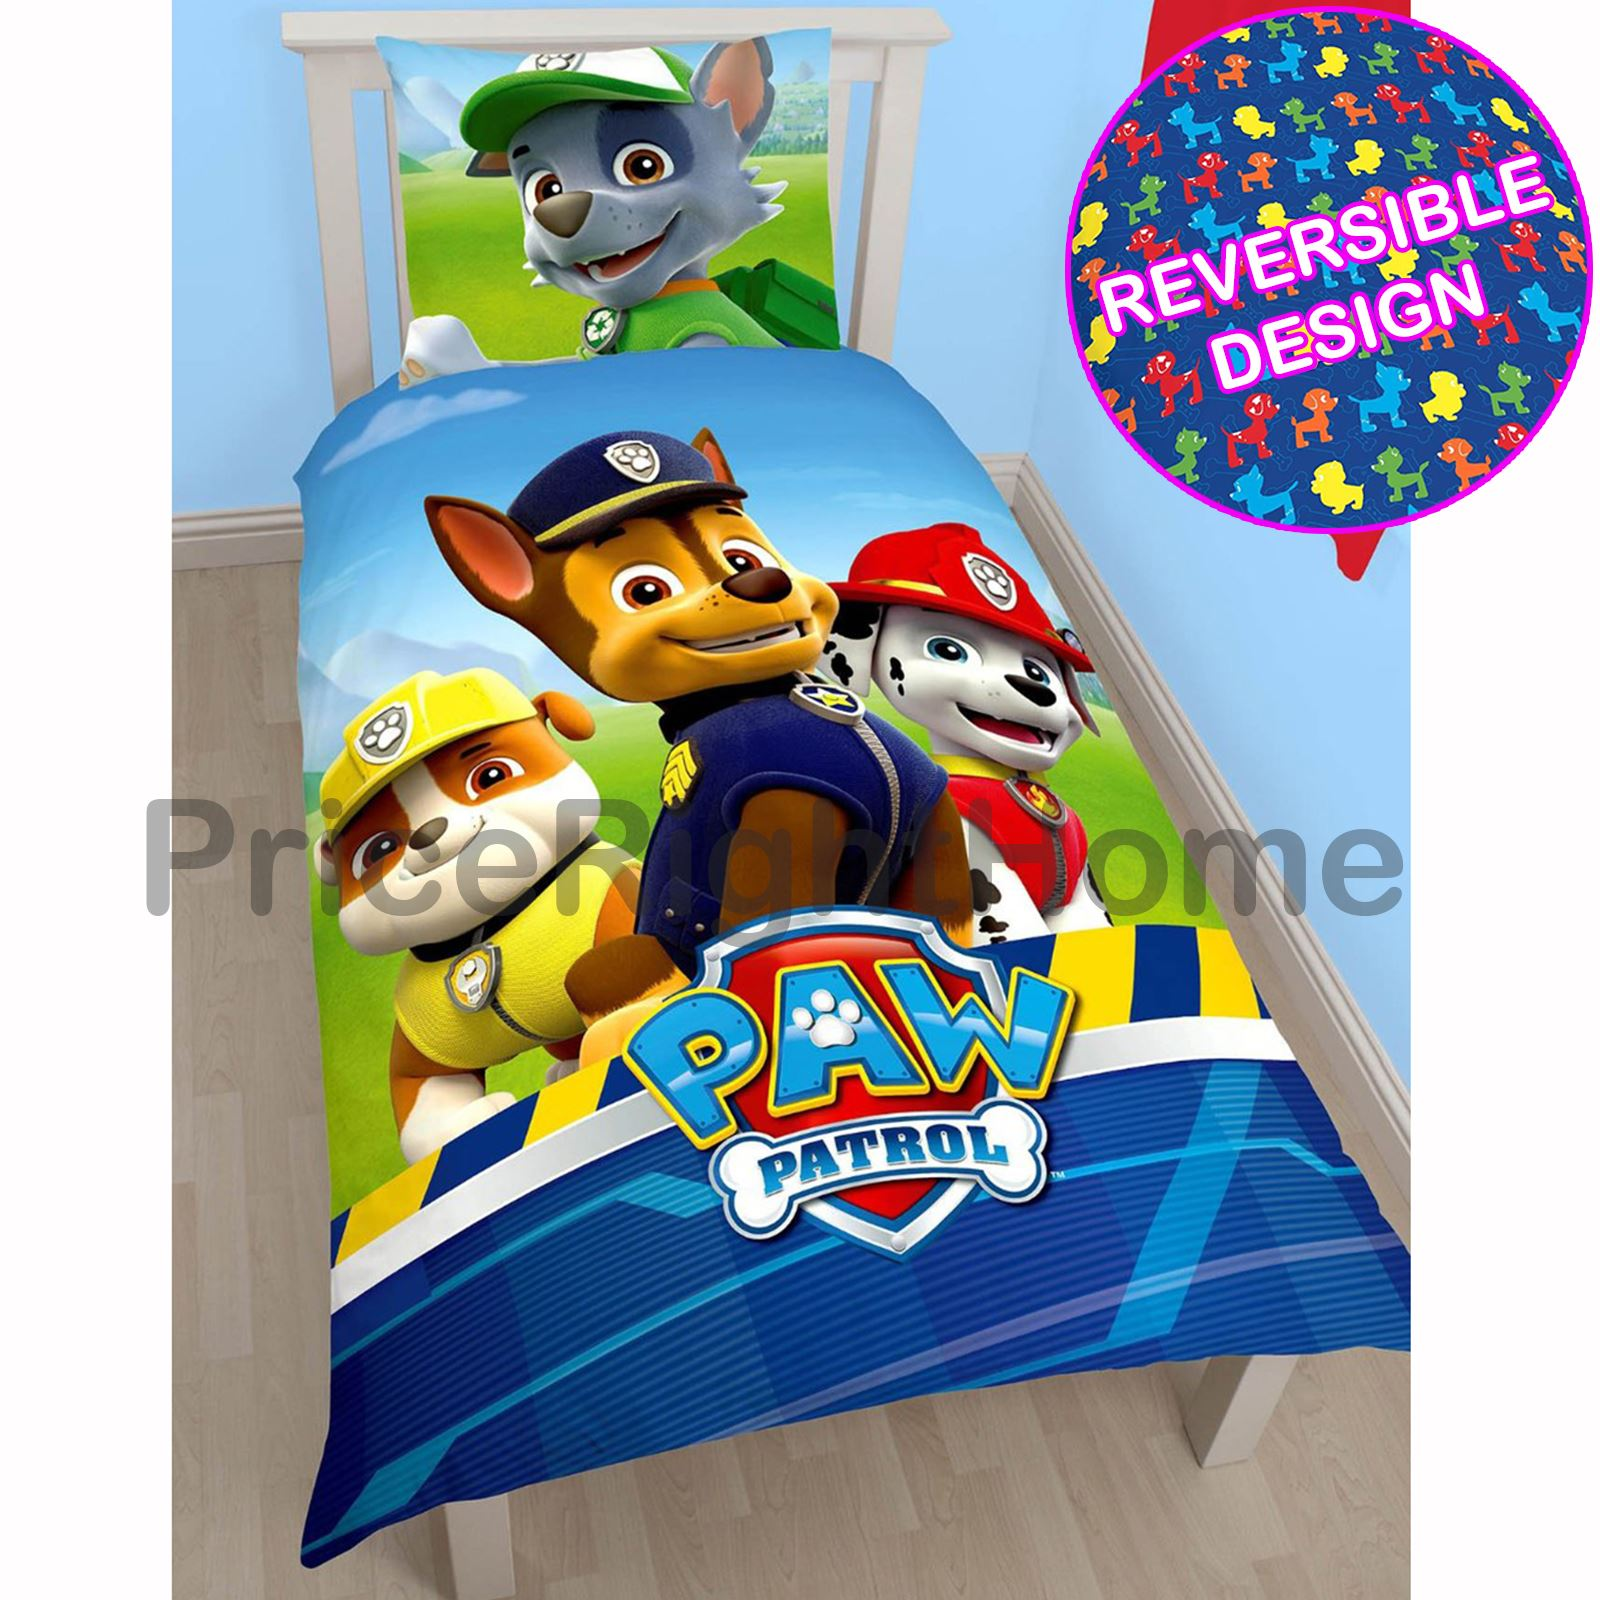 PAW PATROL OFFICIAL DUVET COVER SETS VARIOUS DESIGNS KIDS BEDROOM